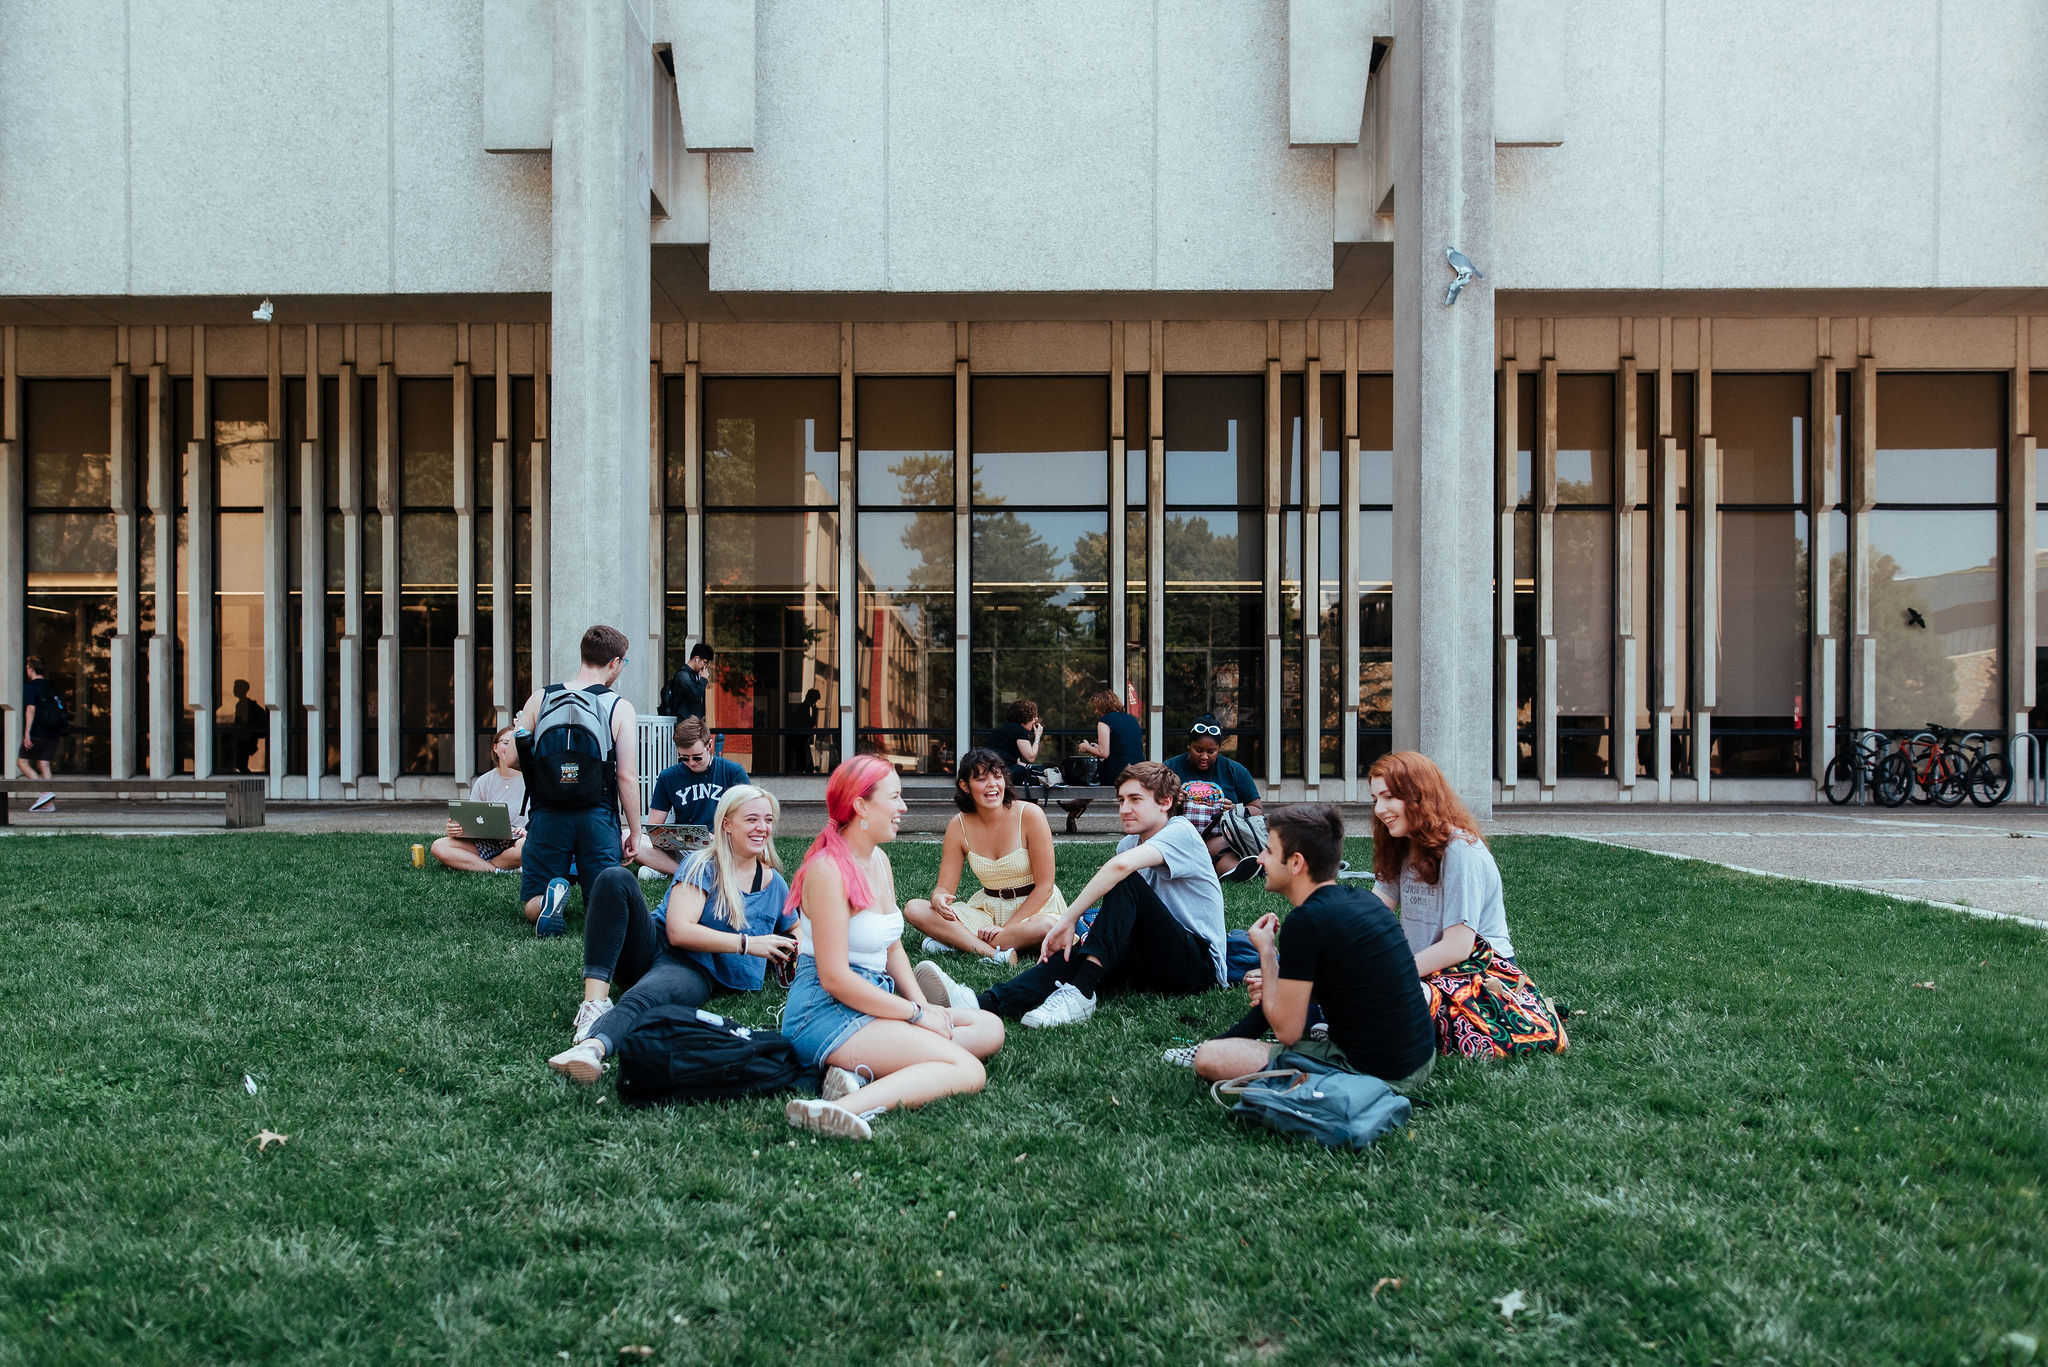 students talking in group while sitting on the grass